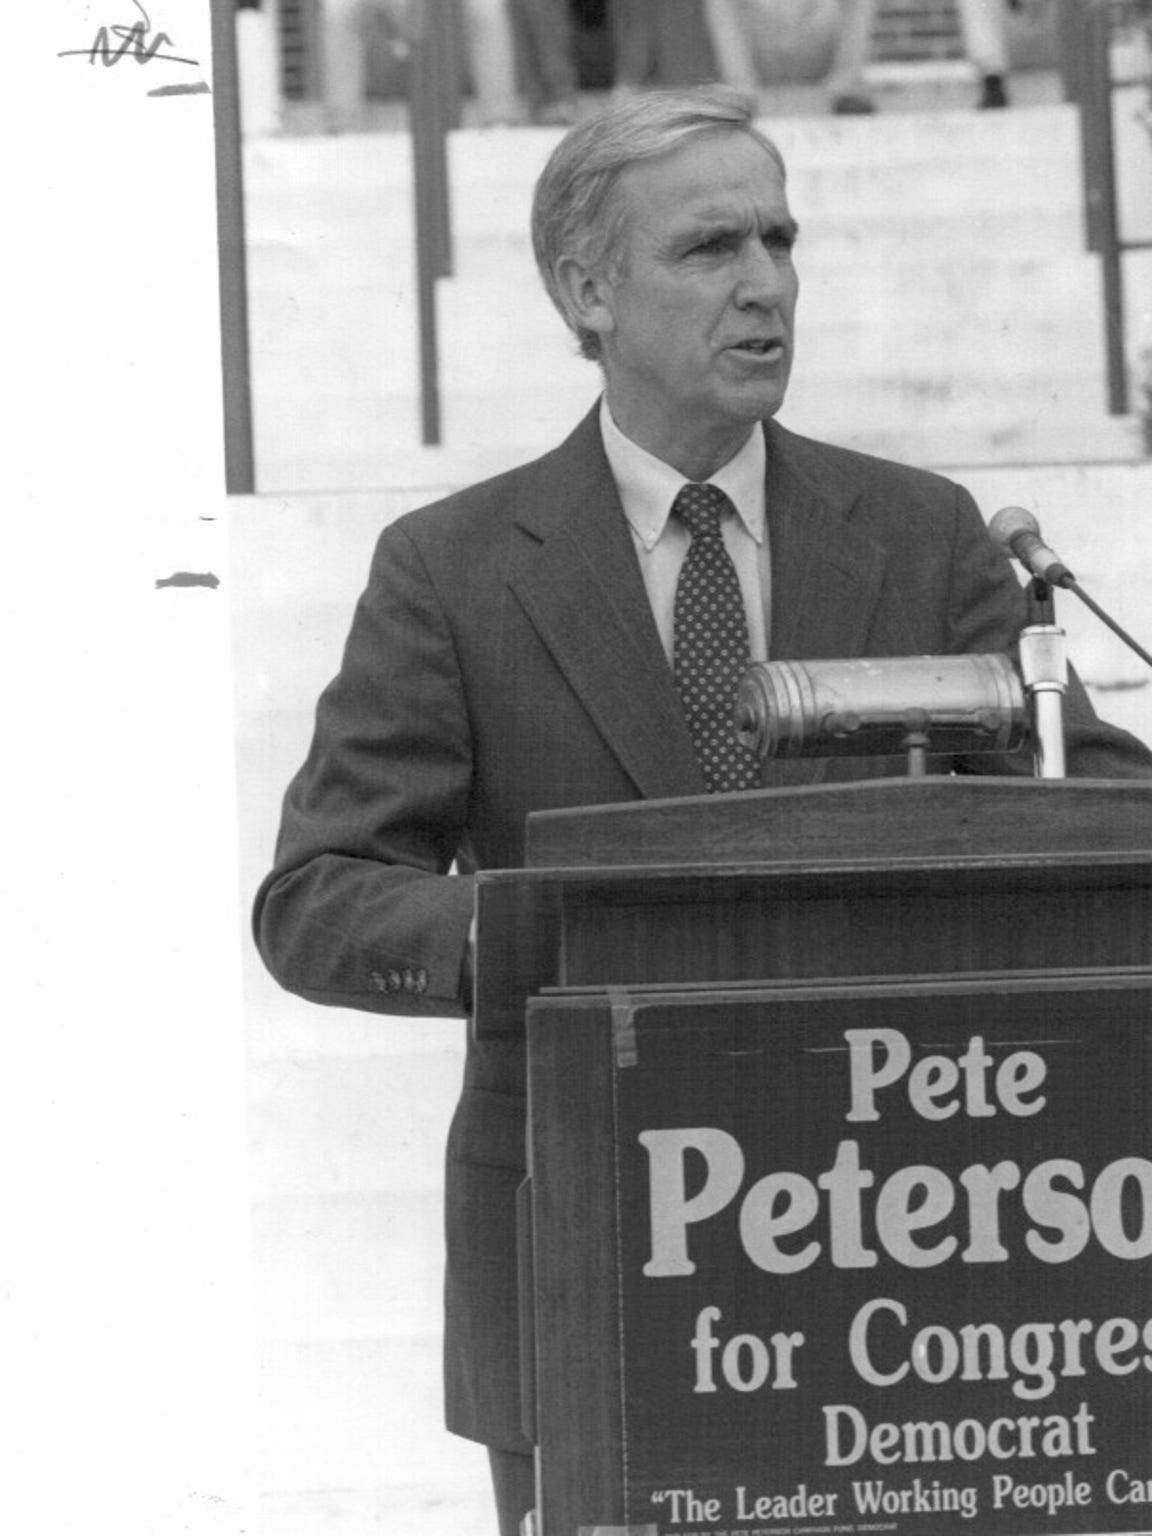 Pete Peterson, who spent three terms in Congress, believes